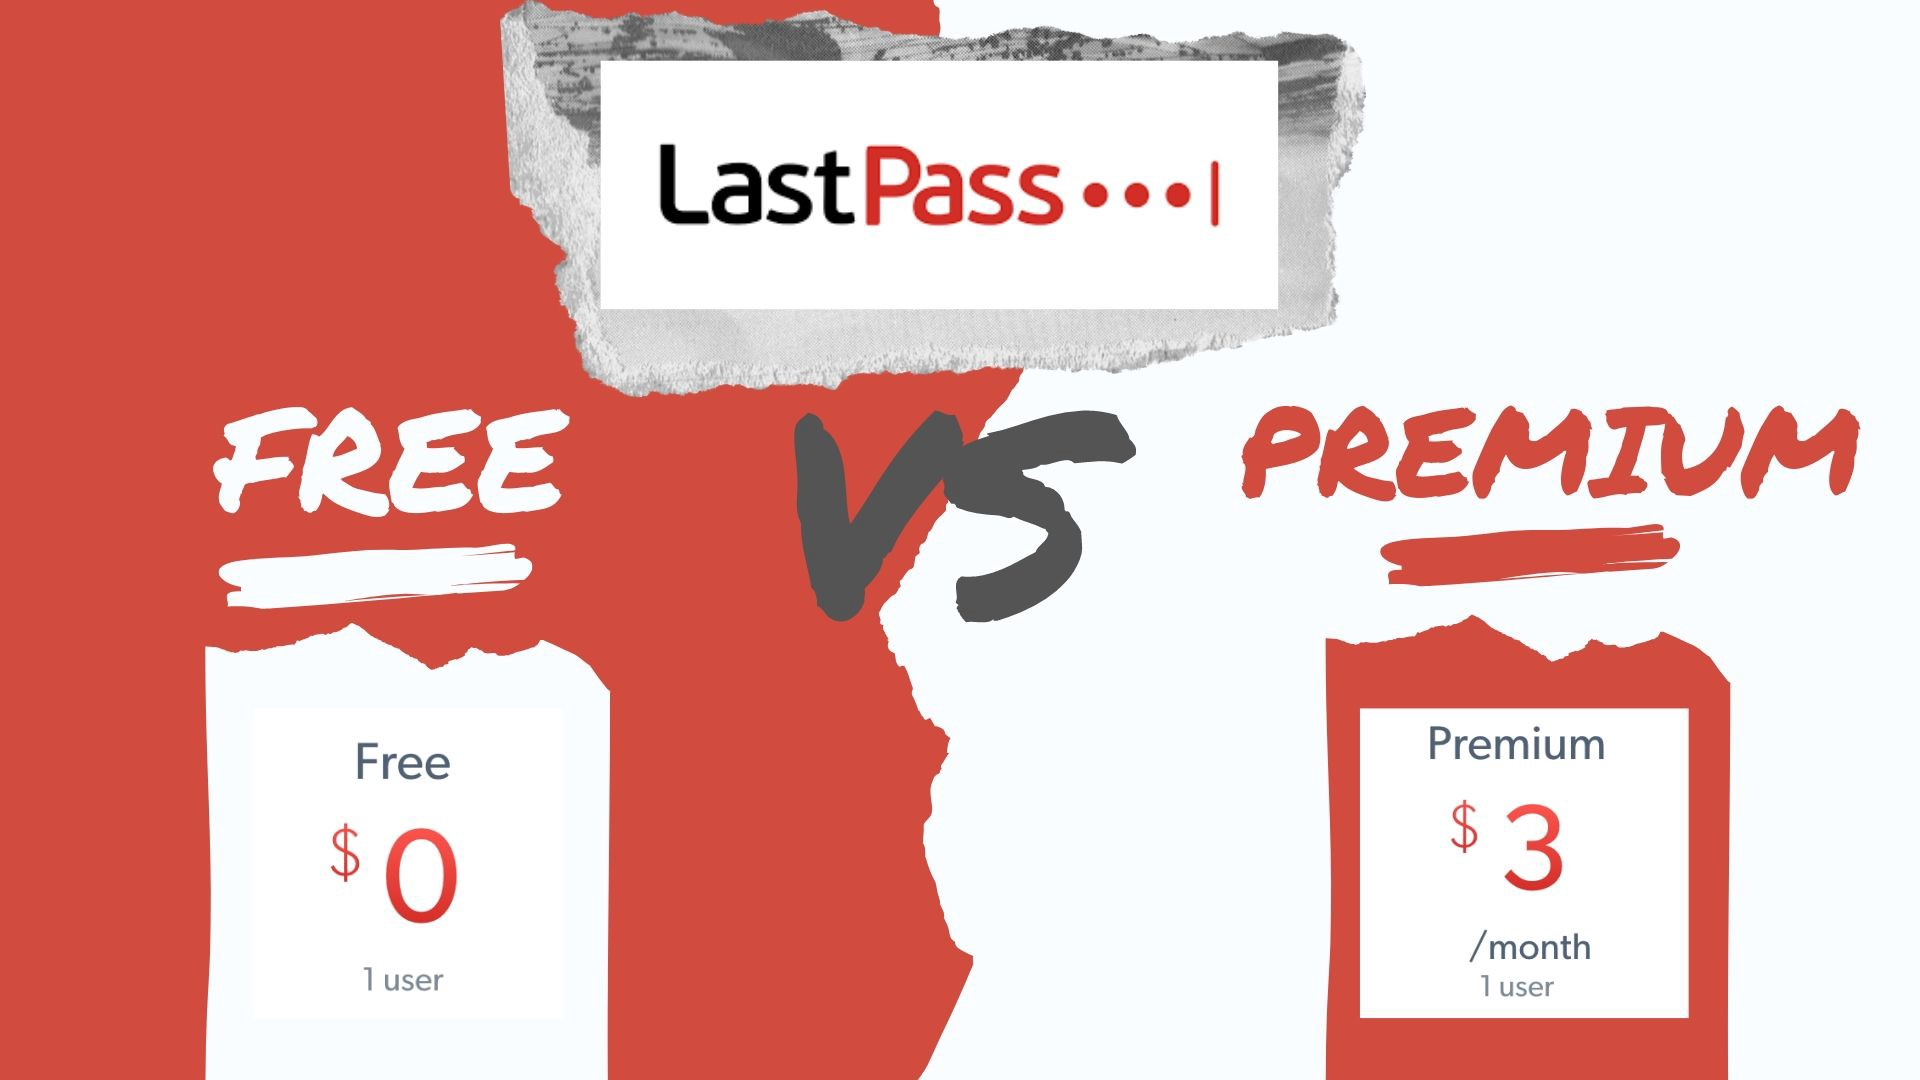 difference between lastpass free and premium